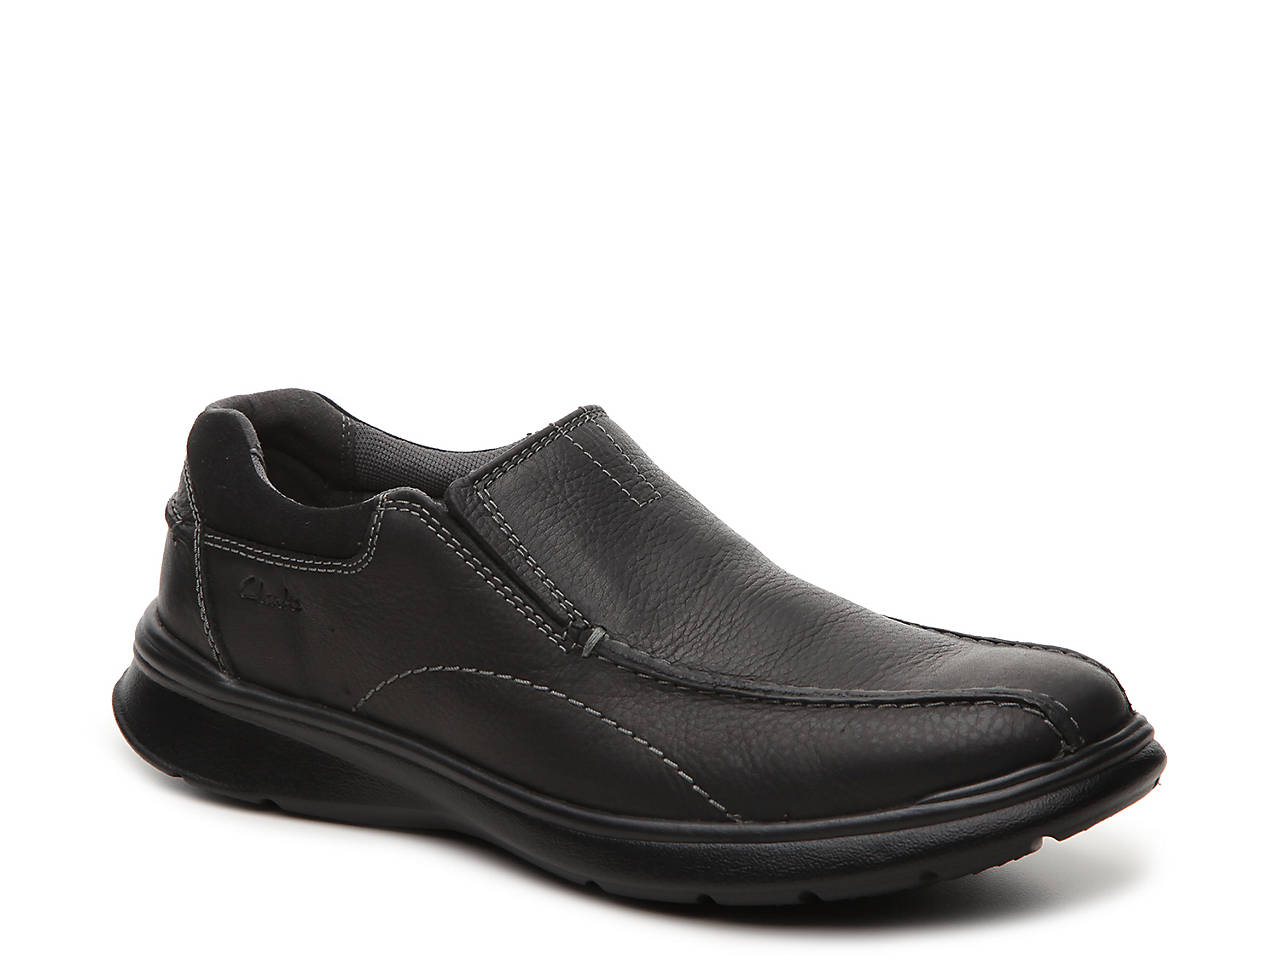 b90579bd8a54b Clarks Cotrell Step Slip-On Men's Shoes | DSW